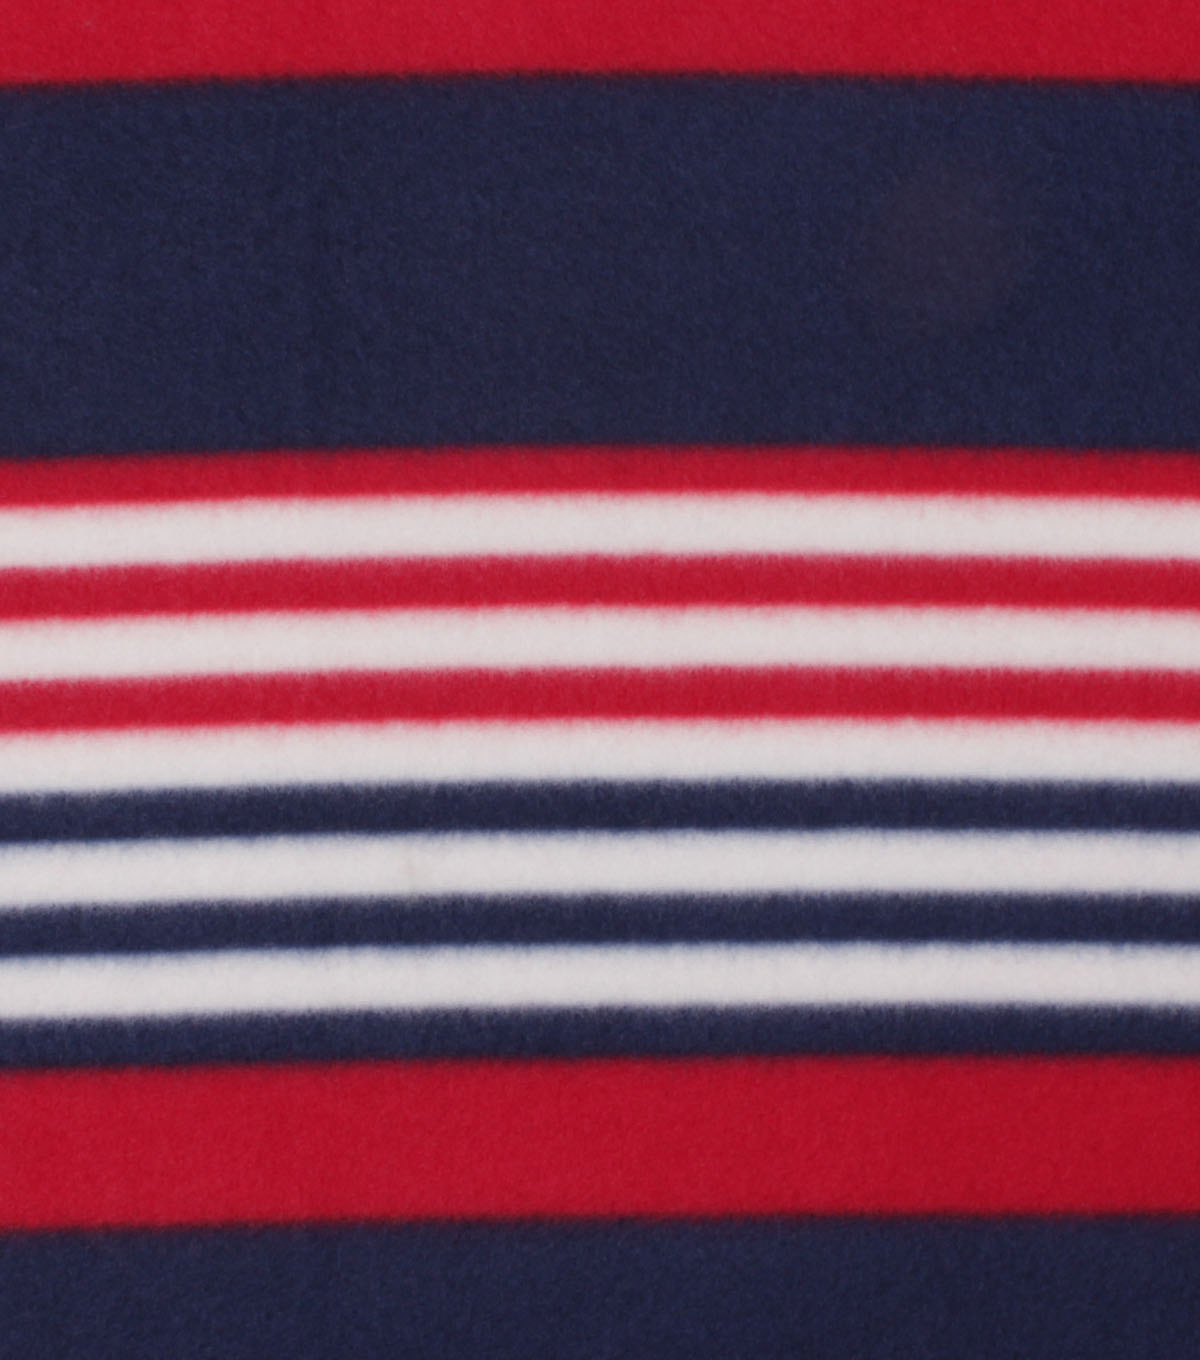 Blizzard Fleece Fabric-Classic Navy, White & Red Stripes